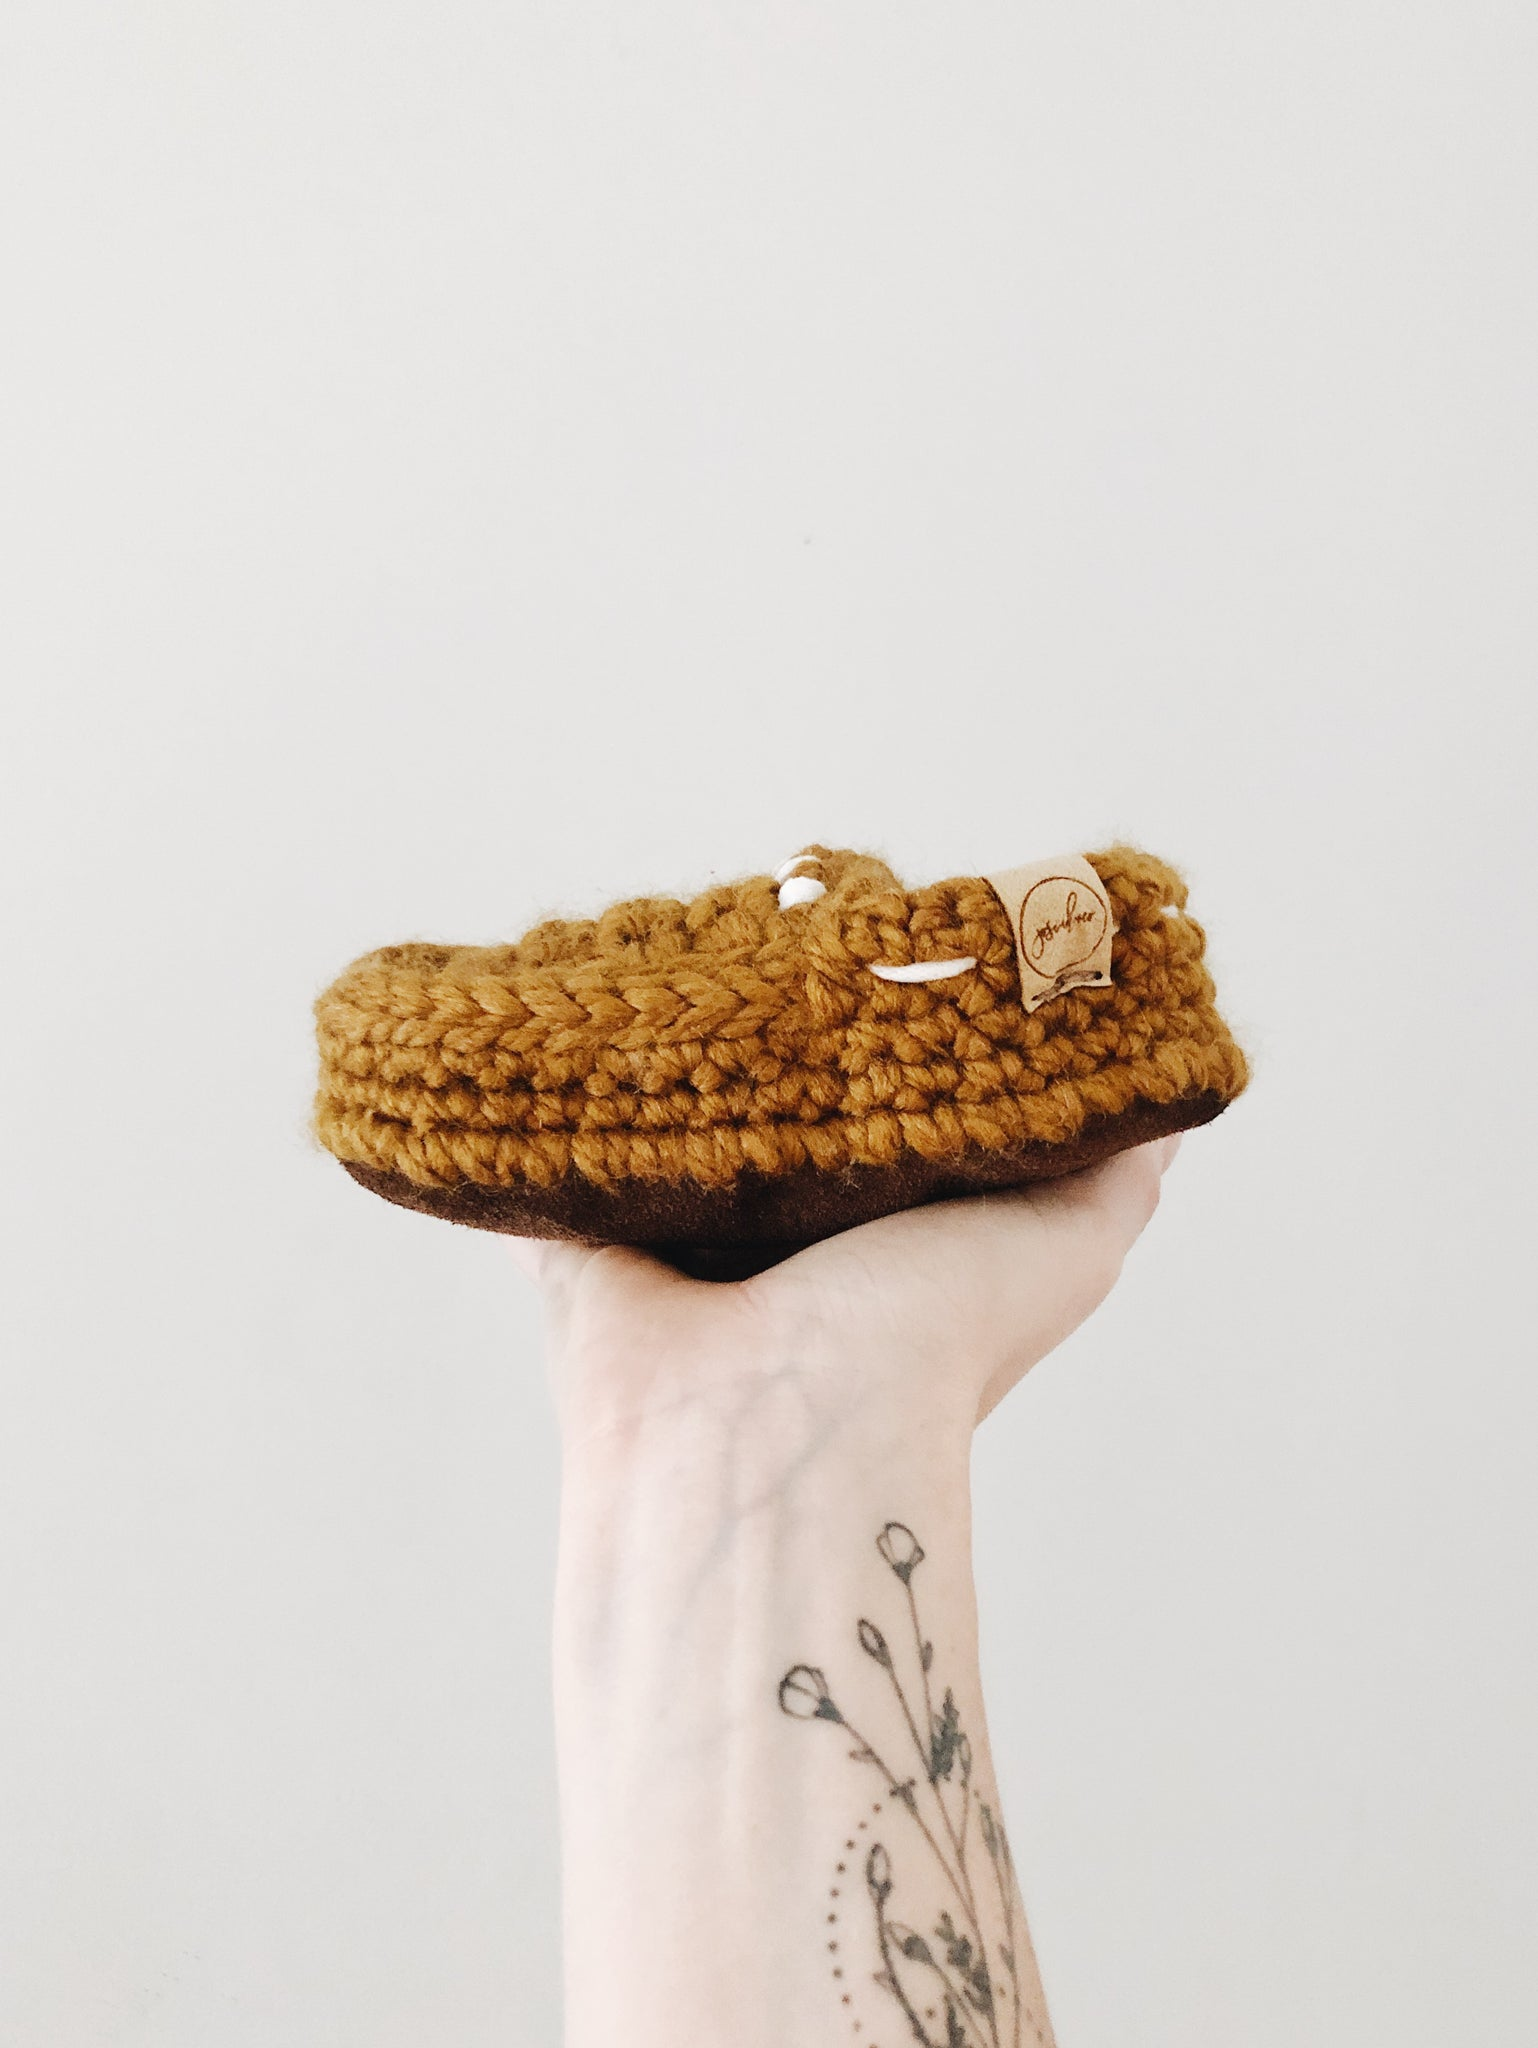 FW2020 // 'Flax' Slip-On Loafers // Toddler // Made to Order